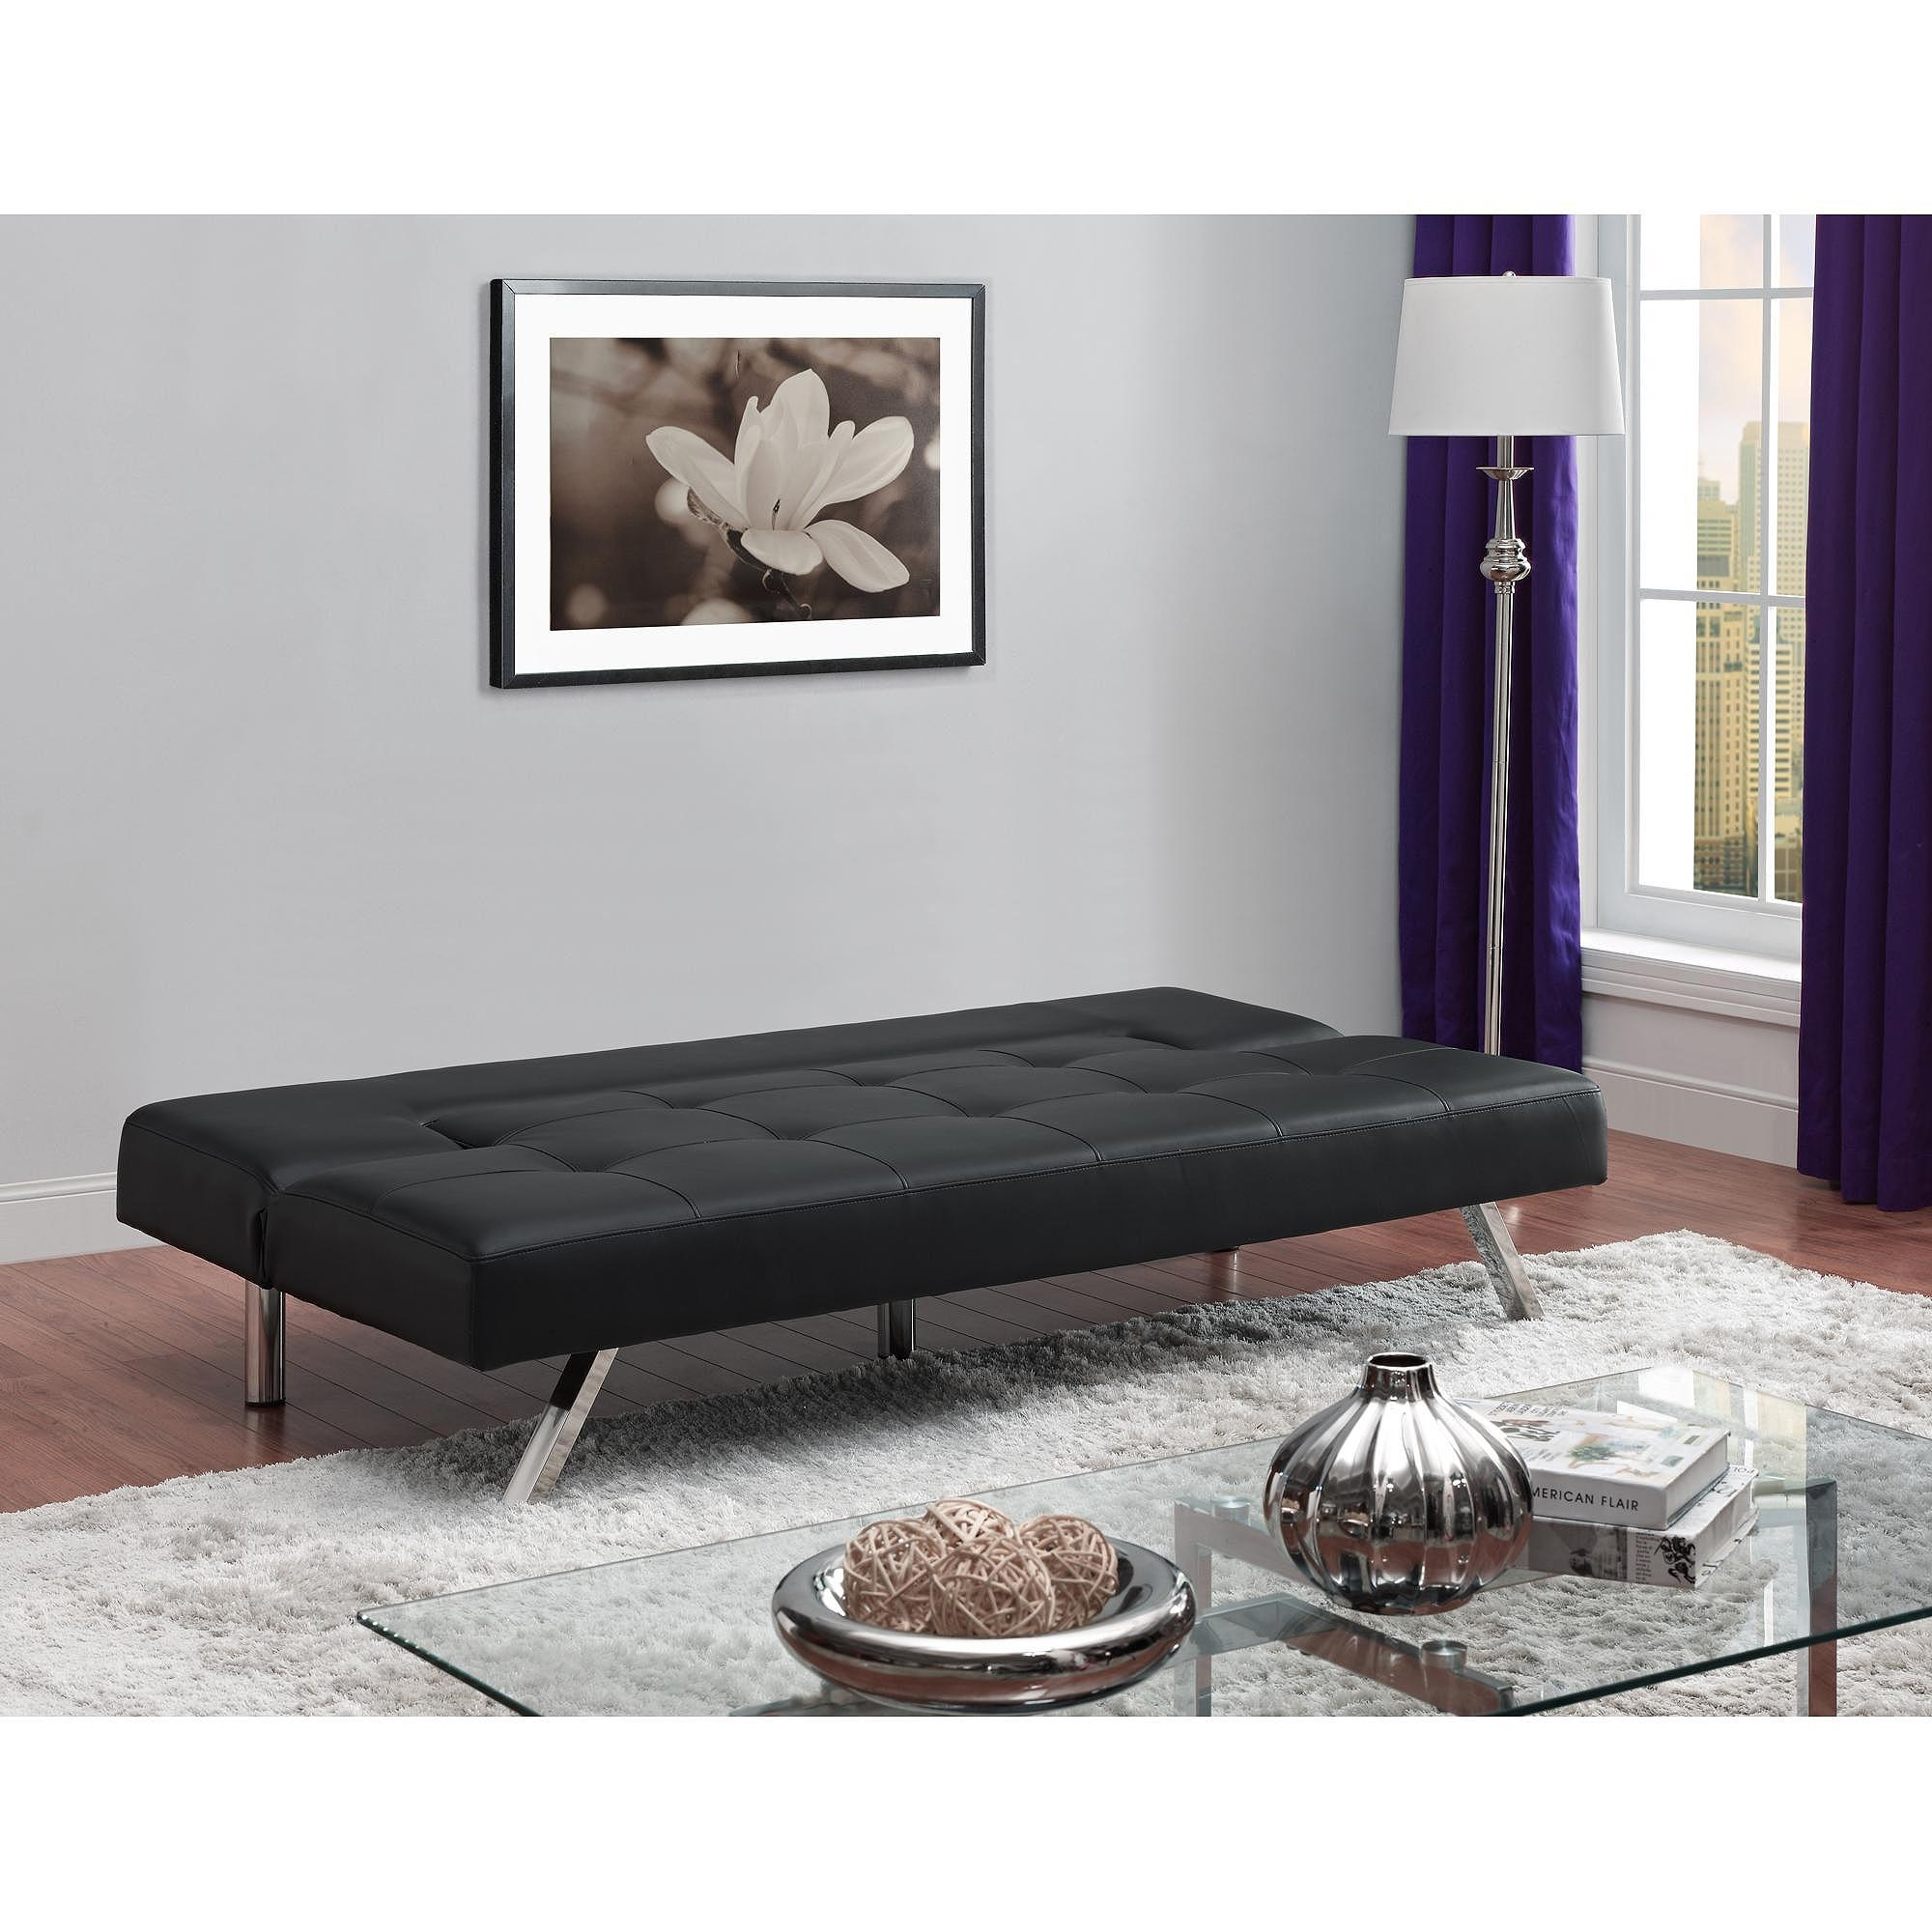 Furniture: Leather Futon Walmart | Futons At Kmart | Futon Full Size For Kmart Futon Beds (Image 9 of 20)